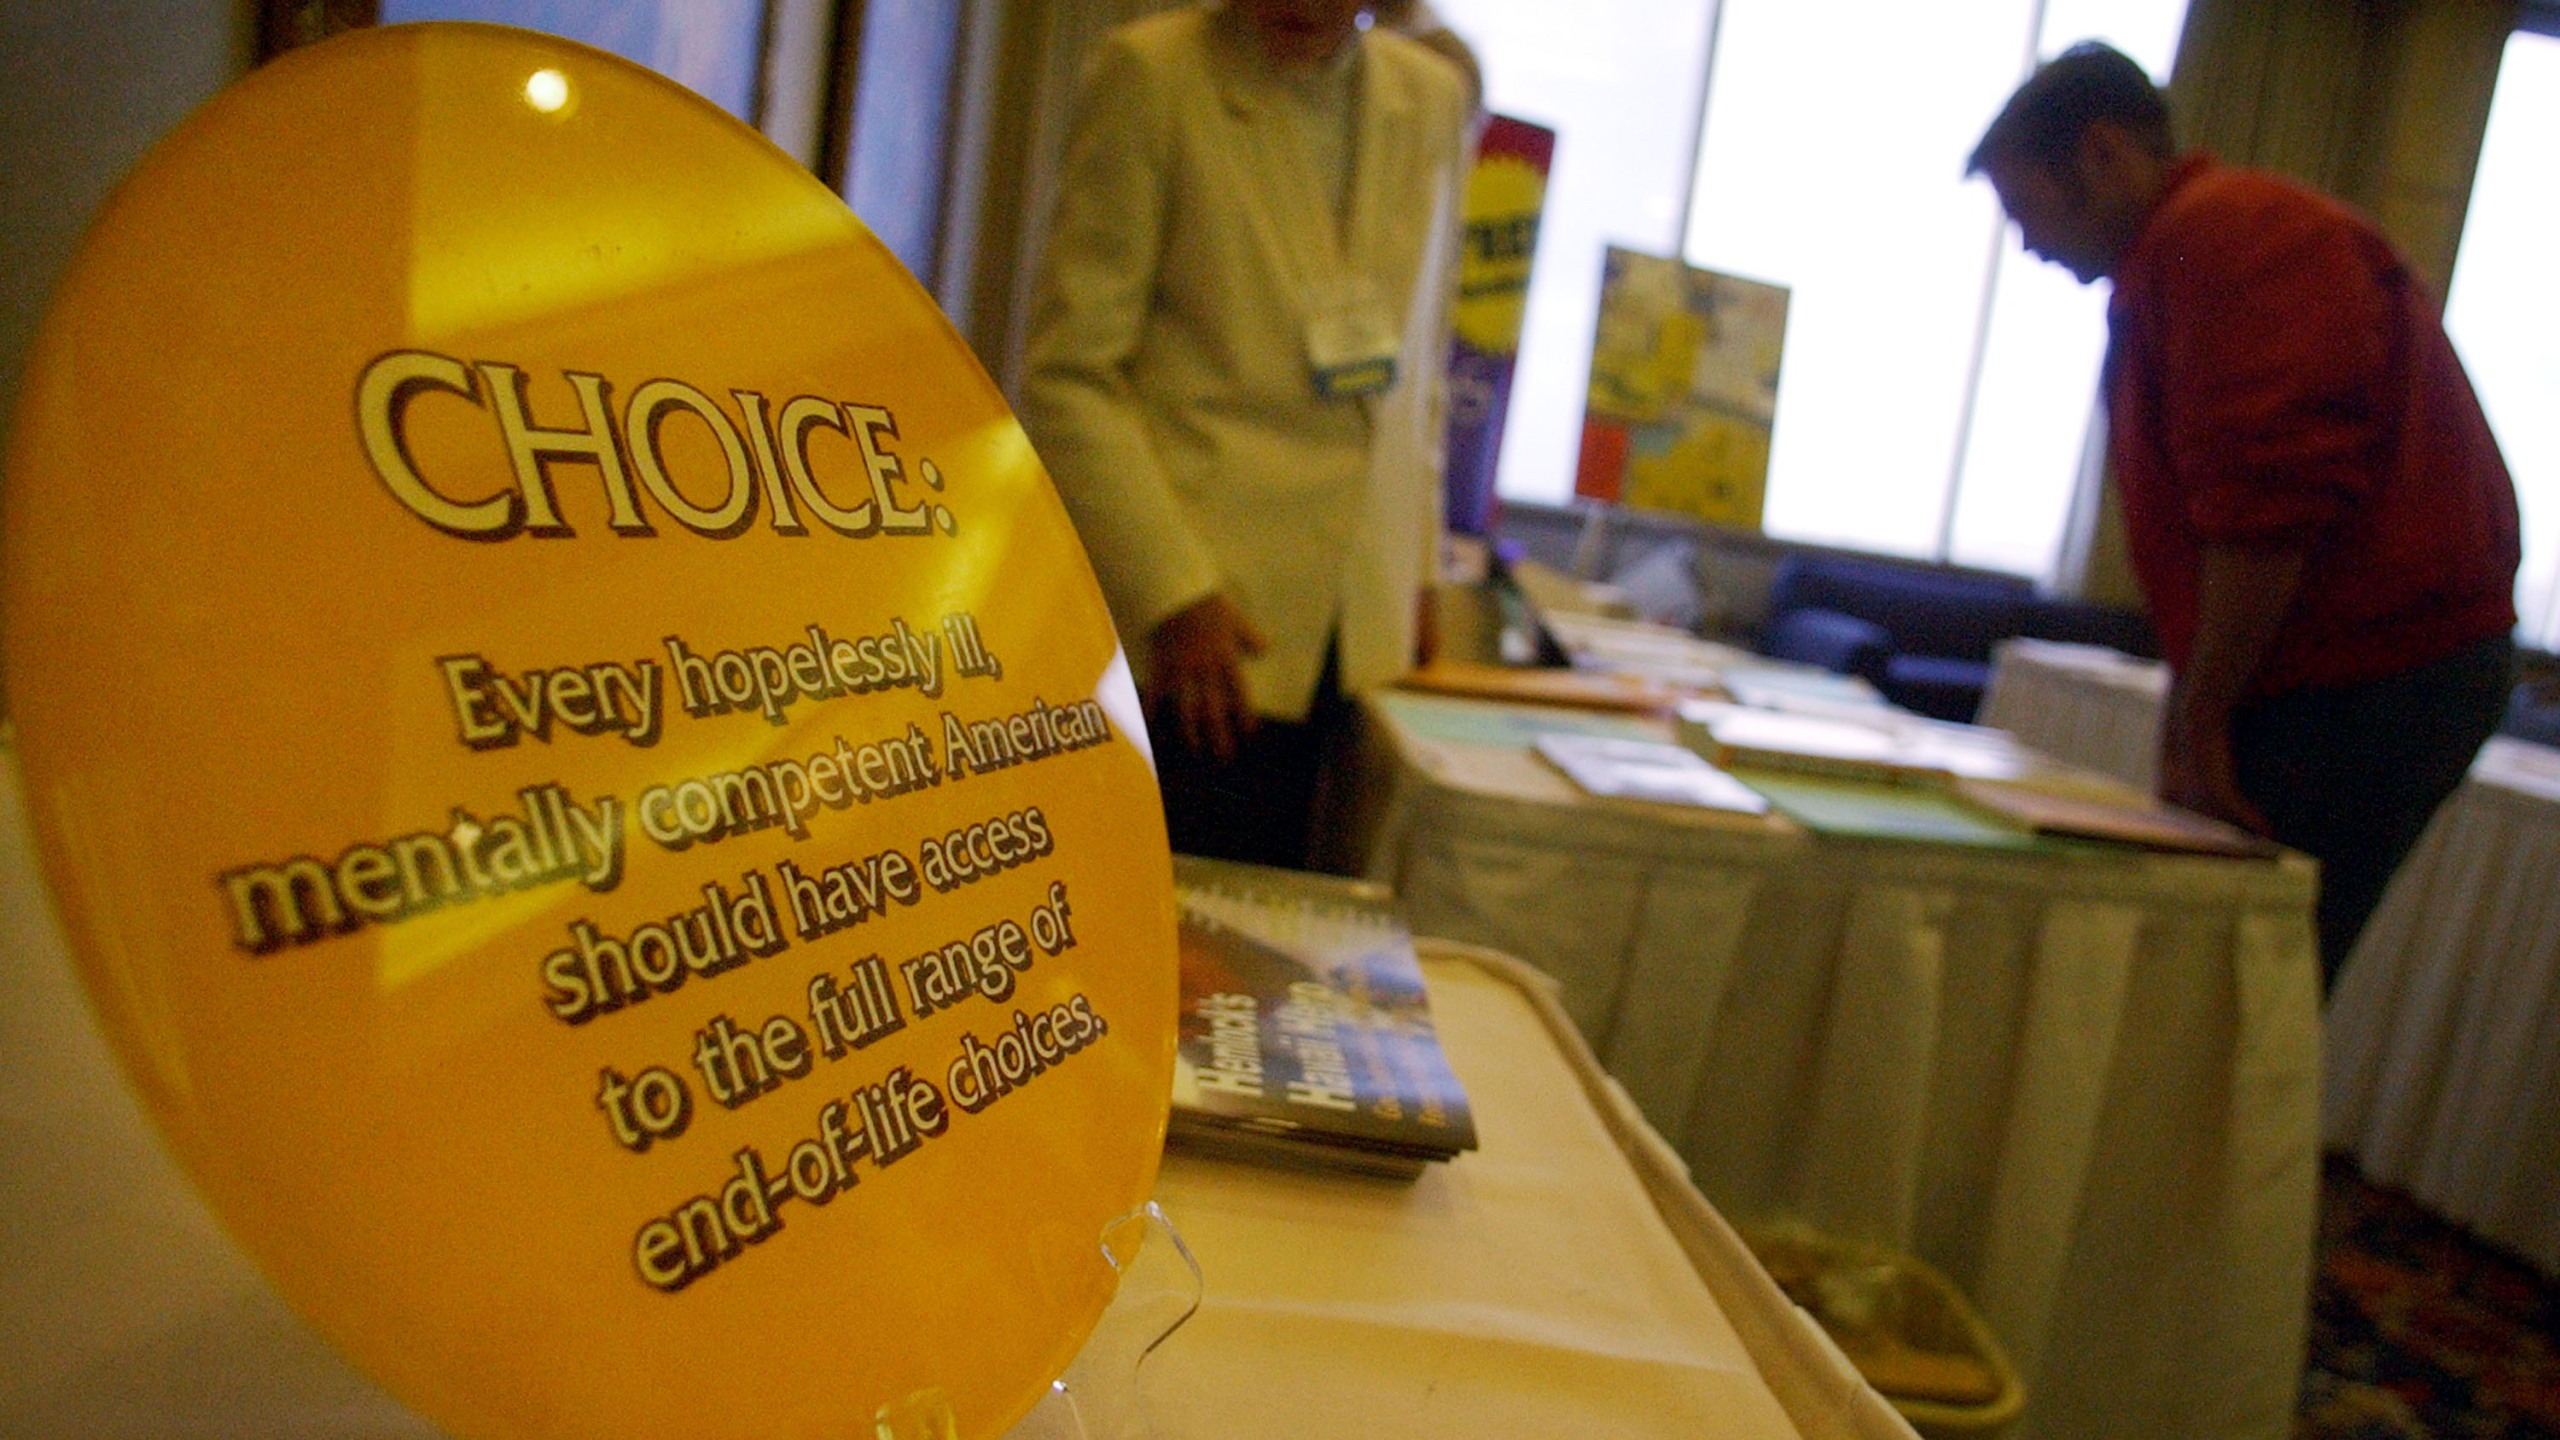 """A sign promoting promoting assisted suicide is displayed at the Hemlock Society's annual meeting being held at the Bahia resort Jan. 10, 2003 in San Diego, California. The society advocates """"choice and dignity at the end of life,"""" according to its Website. (Sandy Huffaker/Getty Images)"""